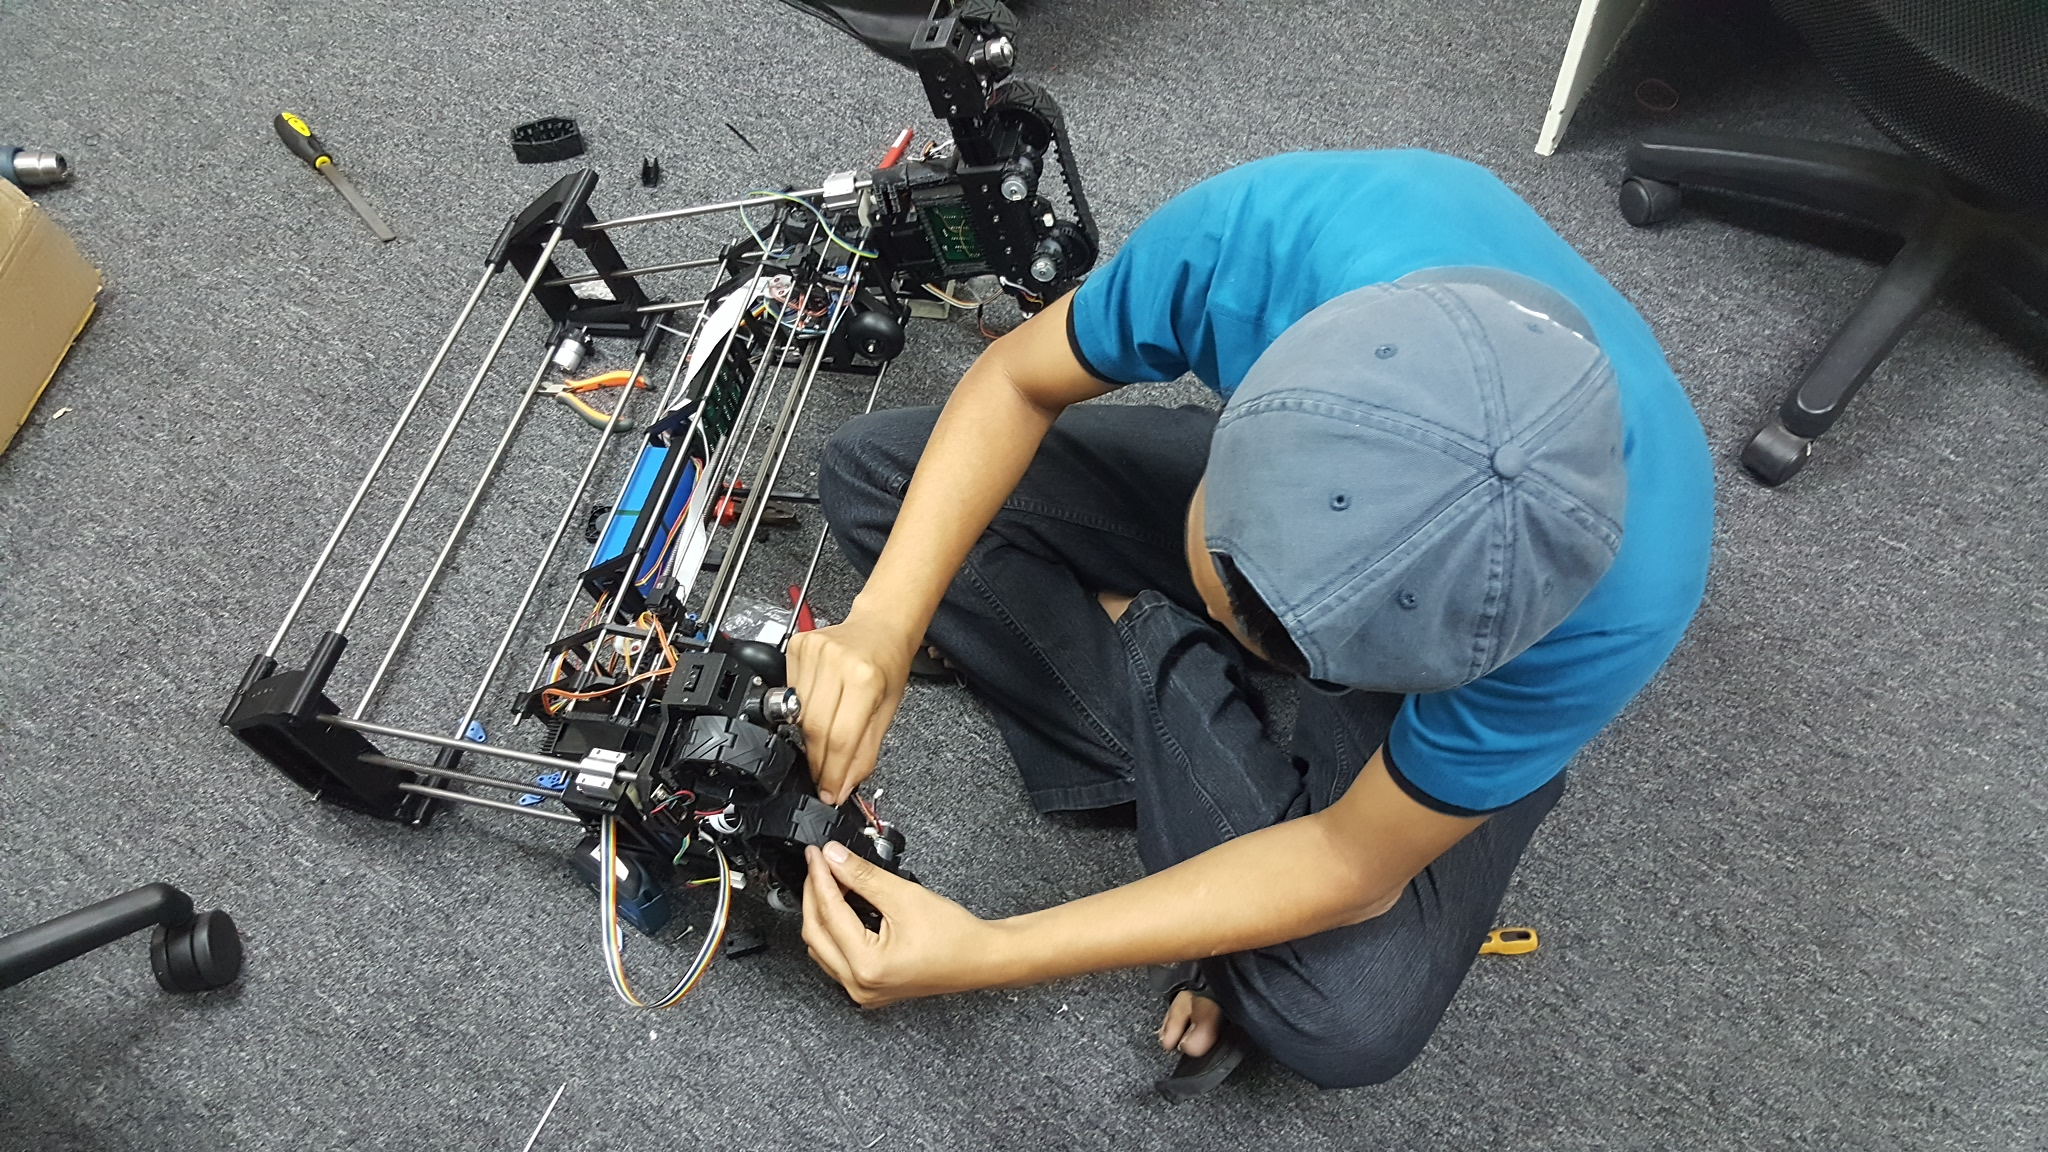 One final adjustments to install the wheel before we can test run the robot!